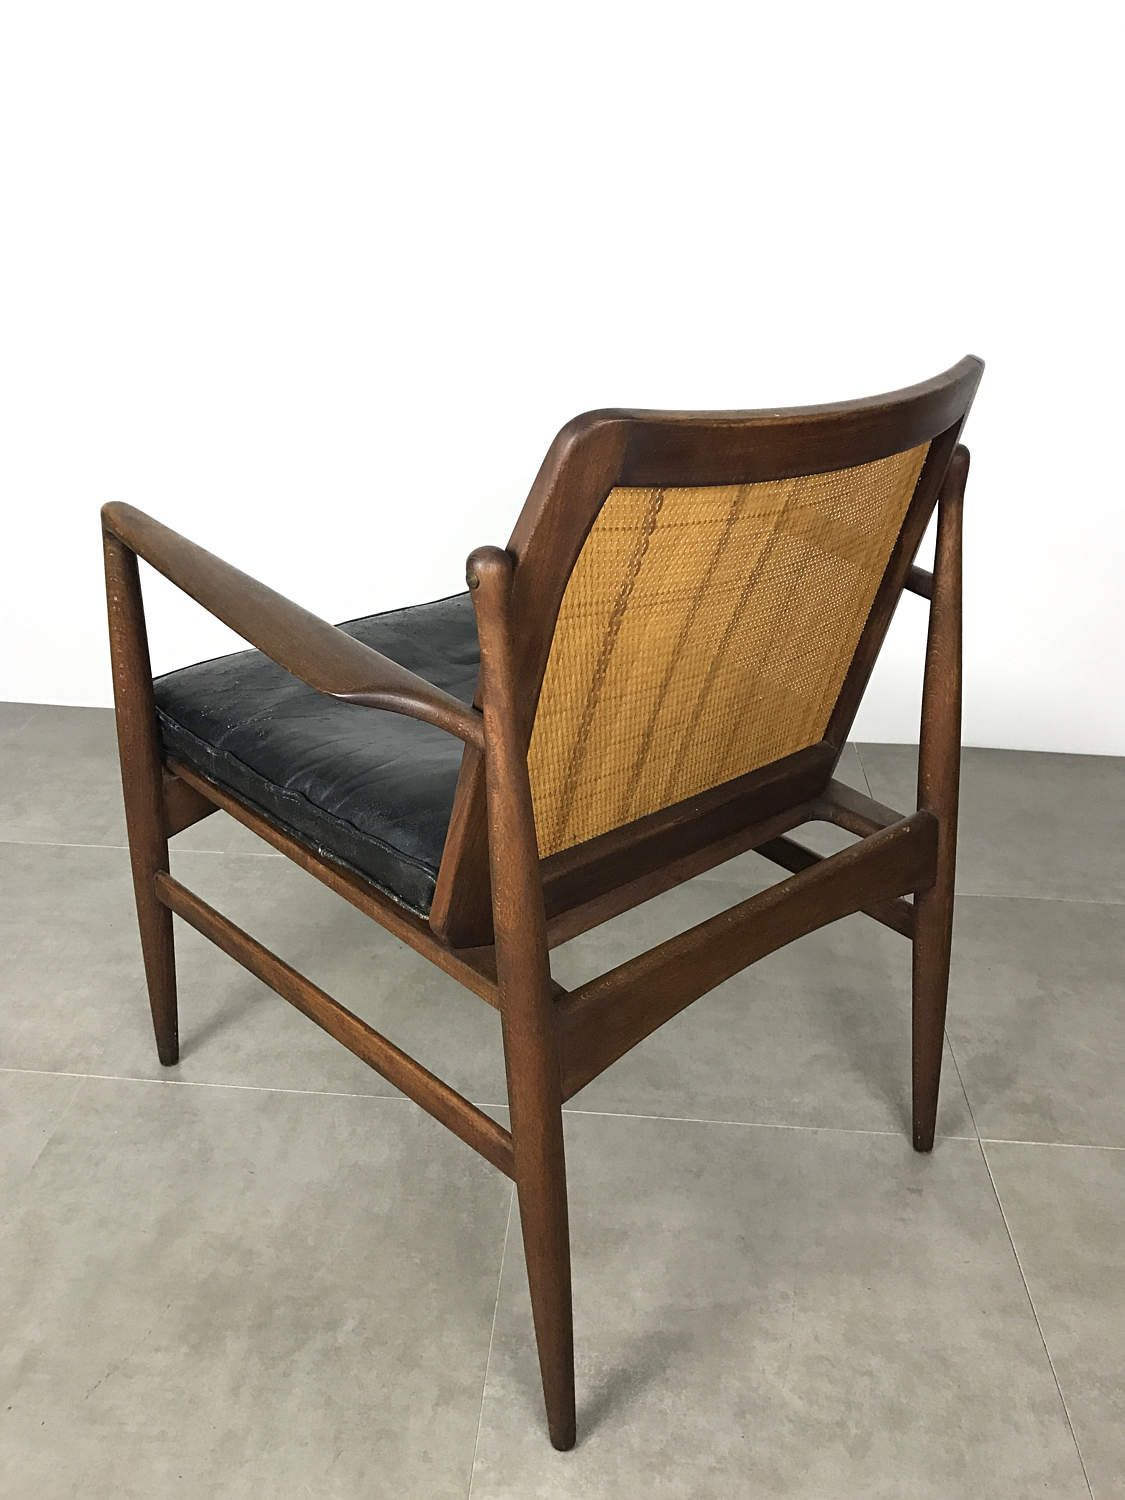 Selig Chair Vintage Ib Kofod Larsen For Selig Cane Back Leather Lounge Chair